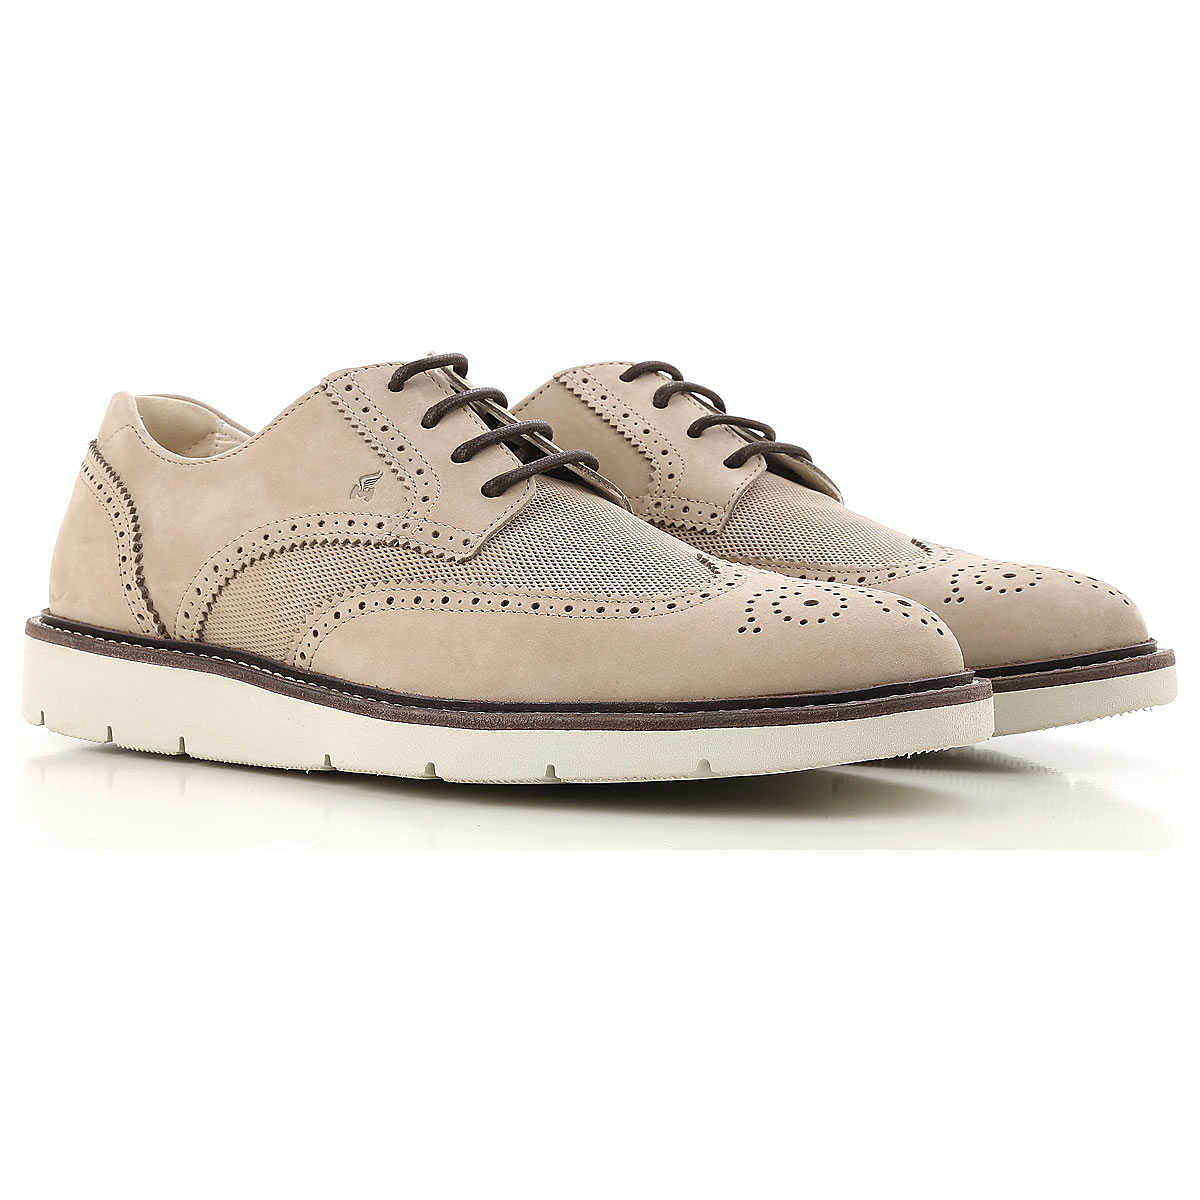 Hogan Lace Up Shoes for Men Oxfords 10 6 6.5 7 8 8.5 Derbies and Brogues On Sale UK - GOOFASH